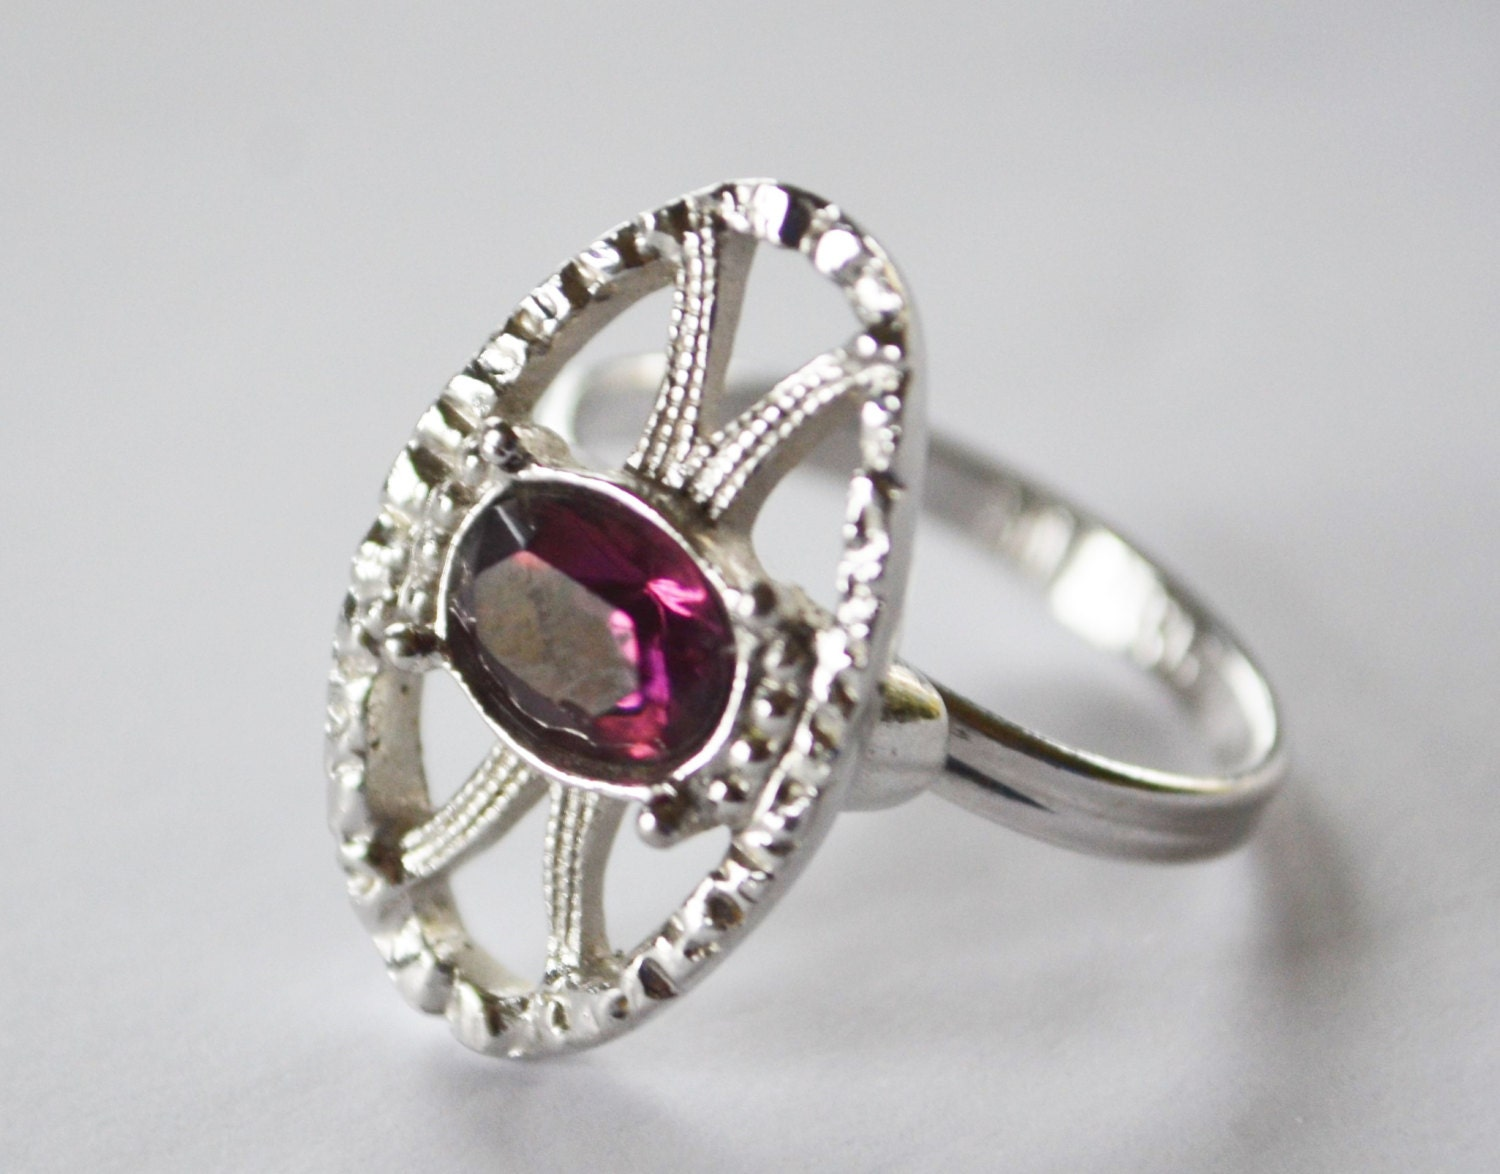 amethyst ring vintage - photo #7